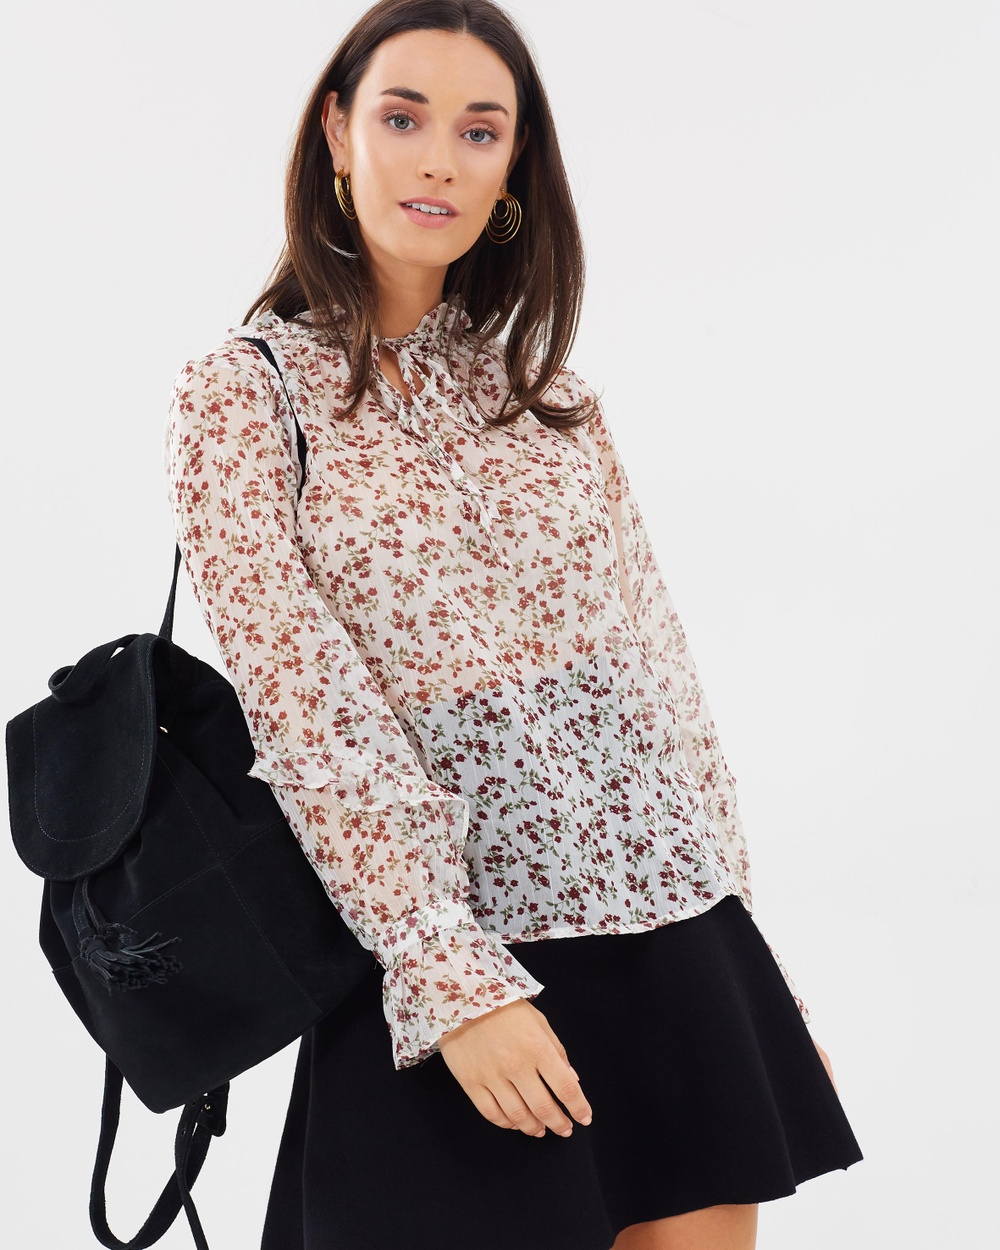 Forcast Kyra Ruffle Neck Blouse Tops Multi Kyra Ruffle Neck Blouse